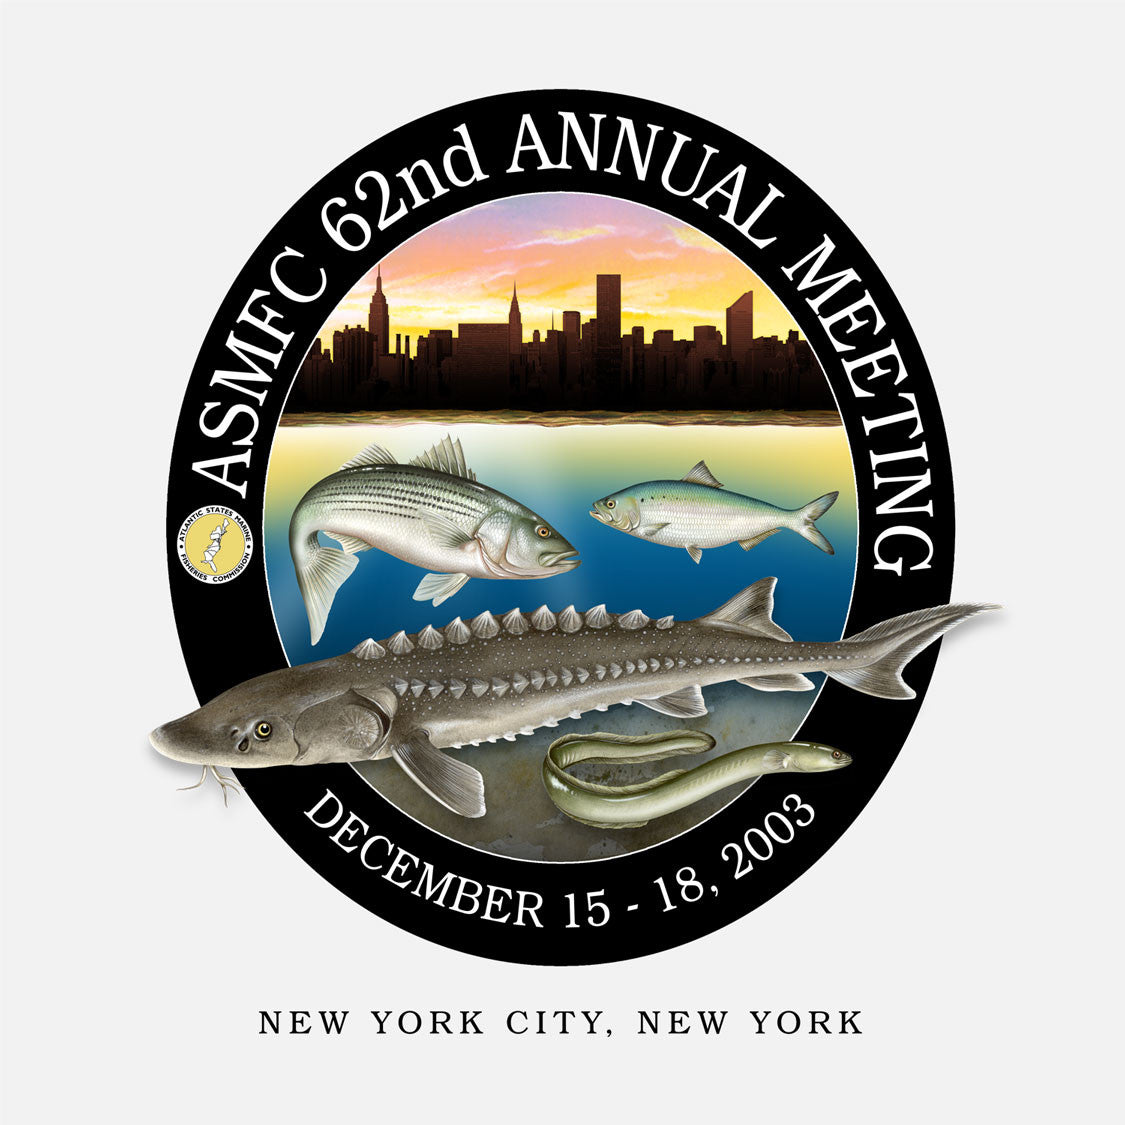 ASMFC 62nd Annual Meeeting